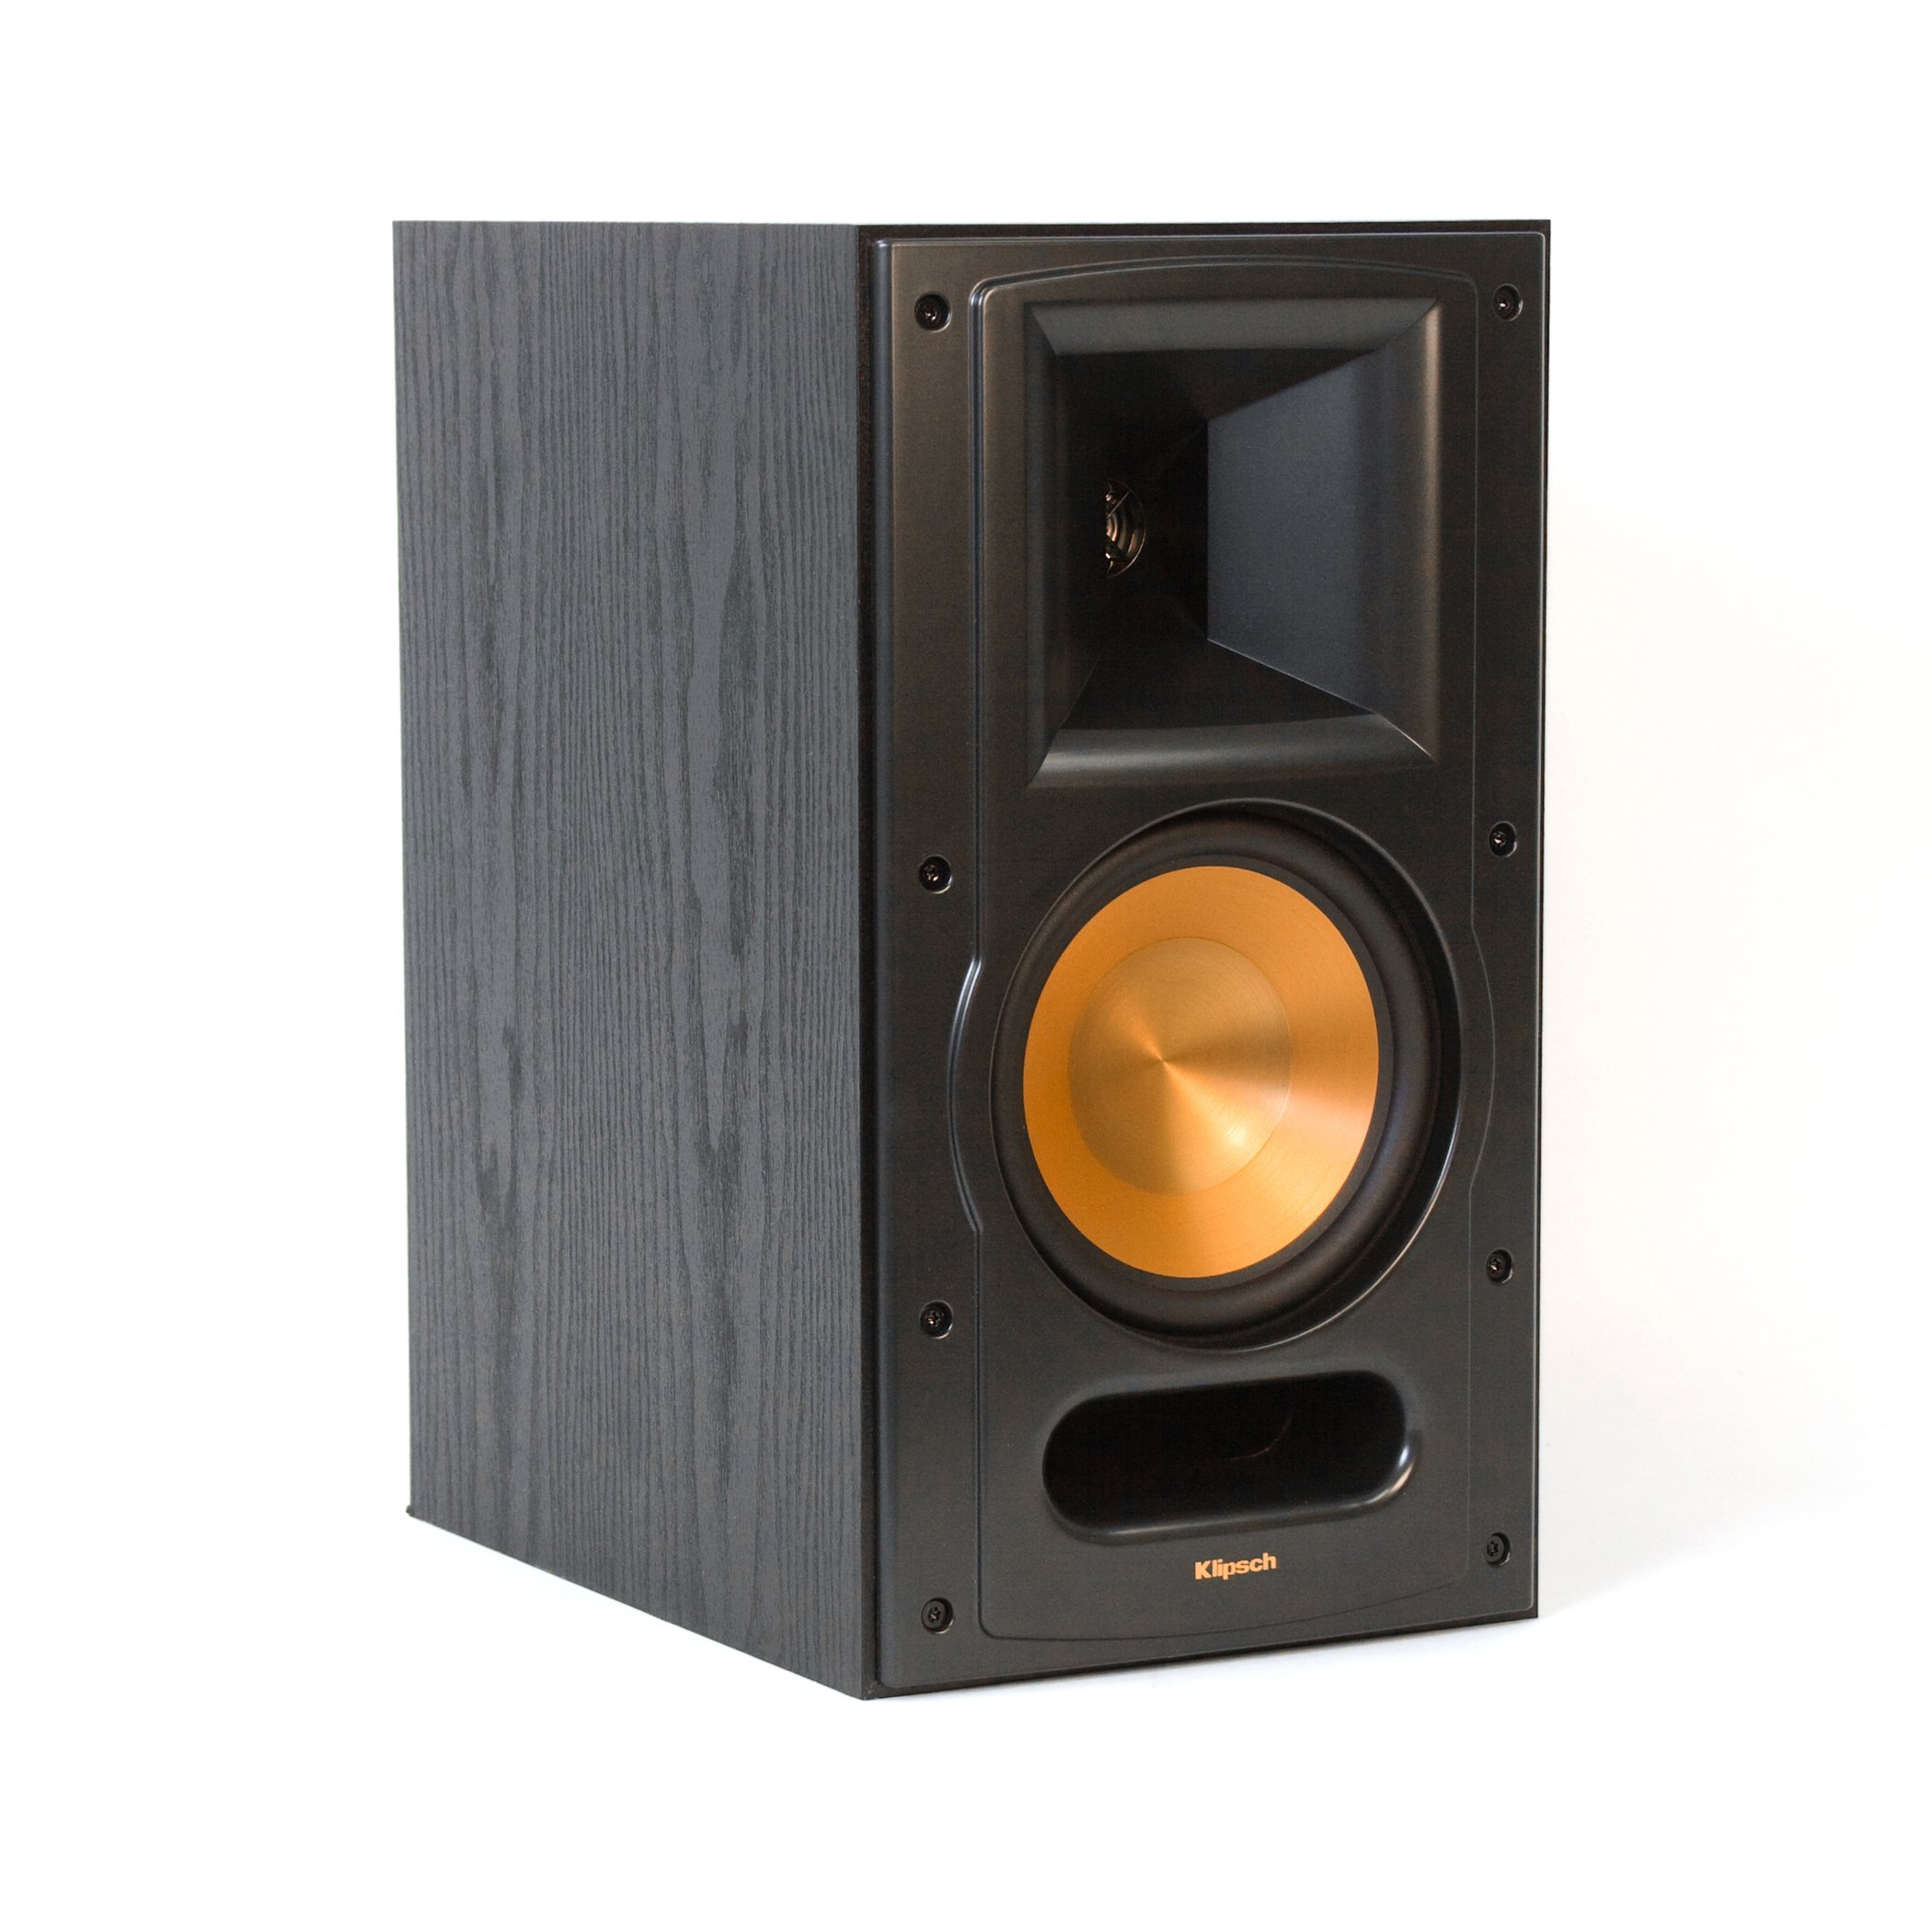 Parlantes Klipsch Rb-61 Ii Reference Series Negros ( Par )